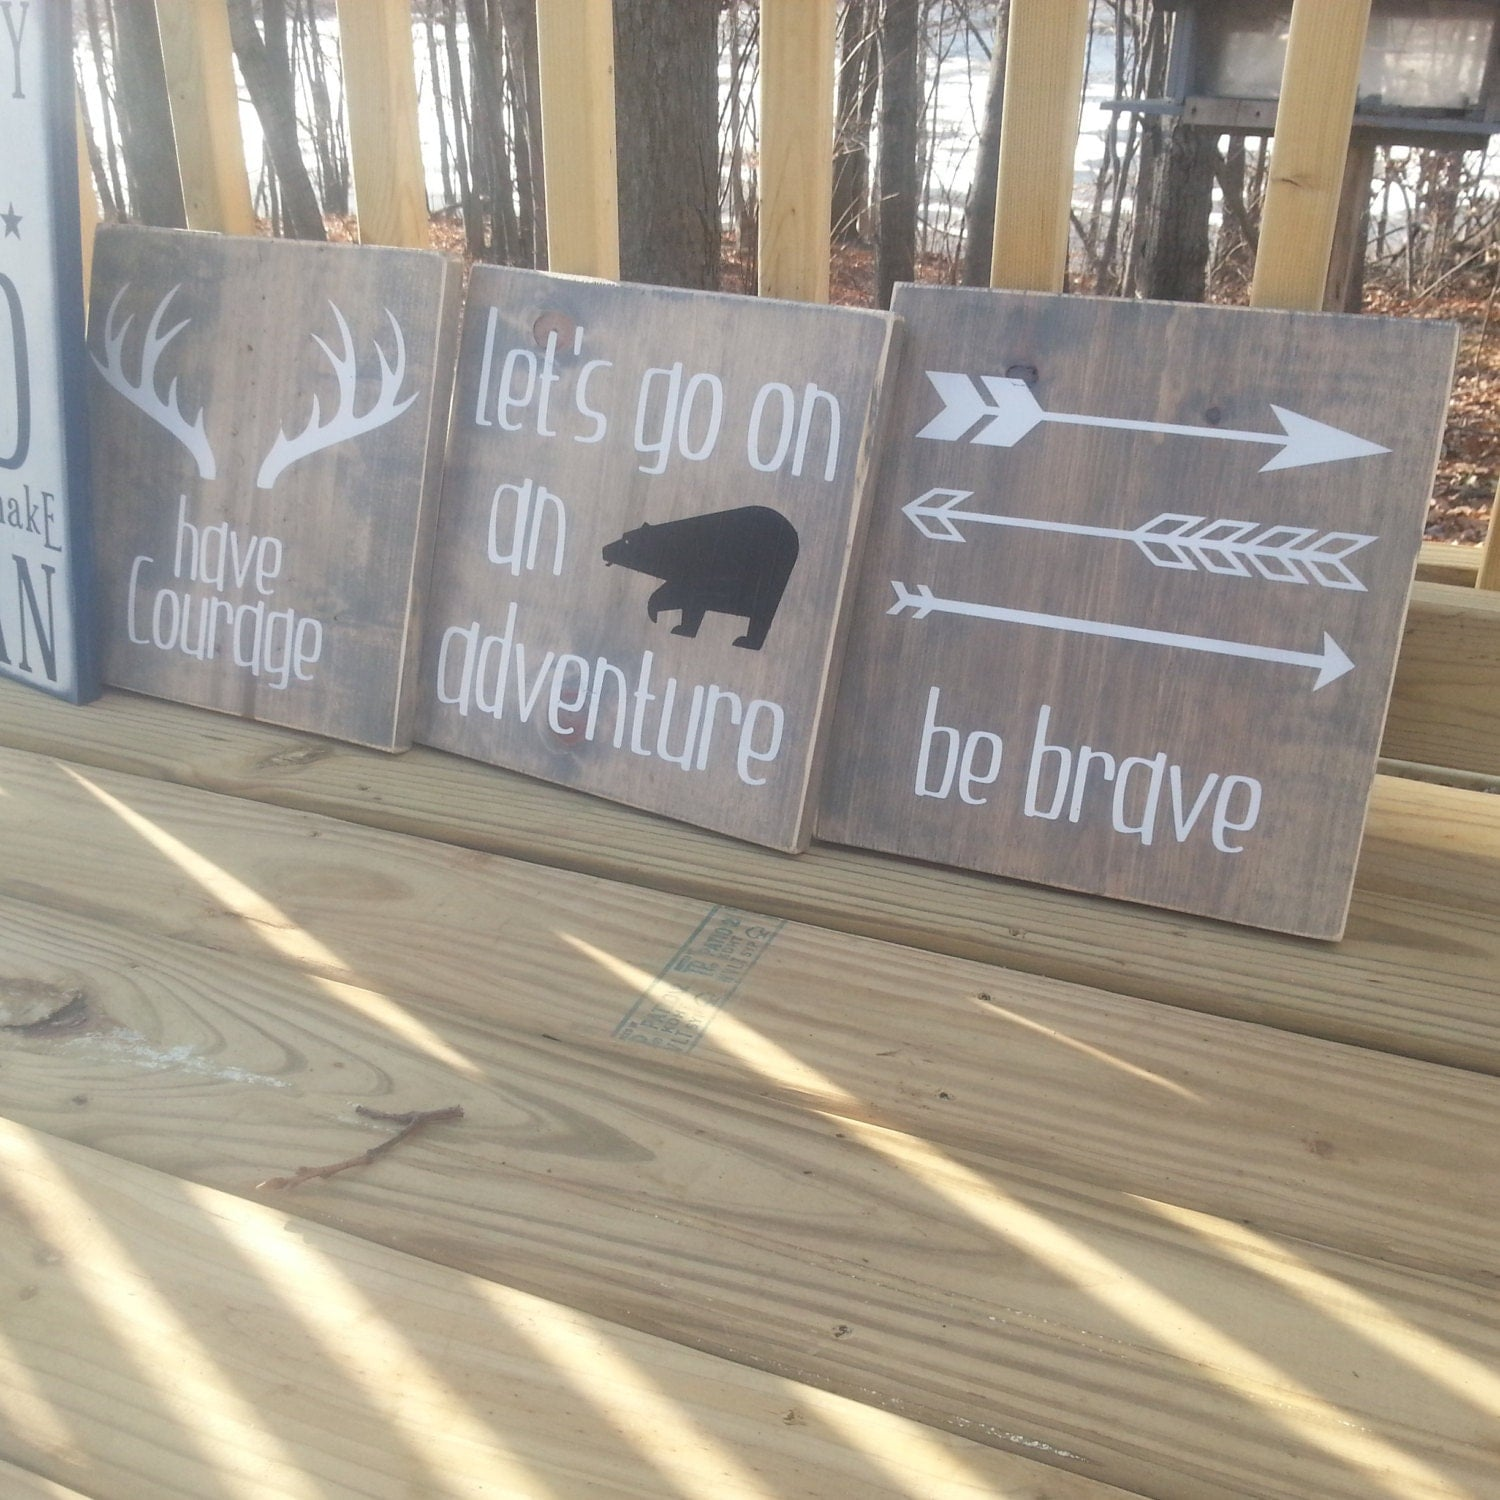 Transitional Nursery With Rustic Wood Wall: Woodland Bedroom / Nursery Signs Rustic Wall Art By